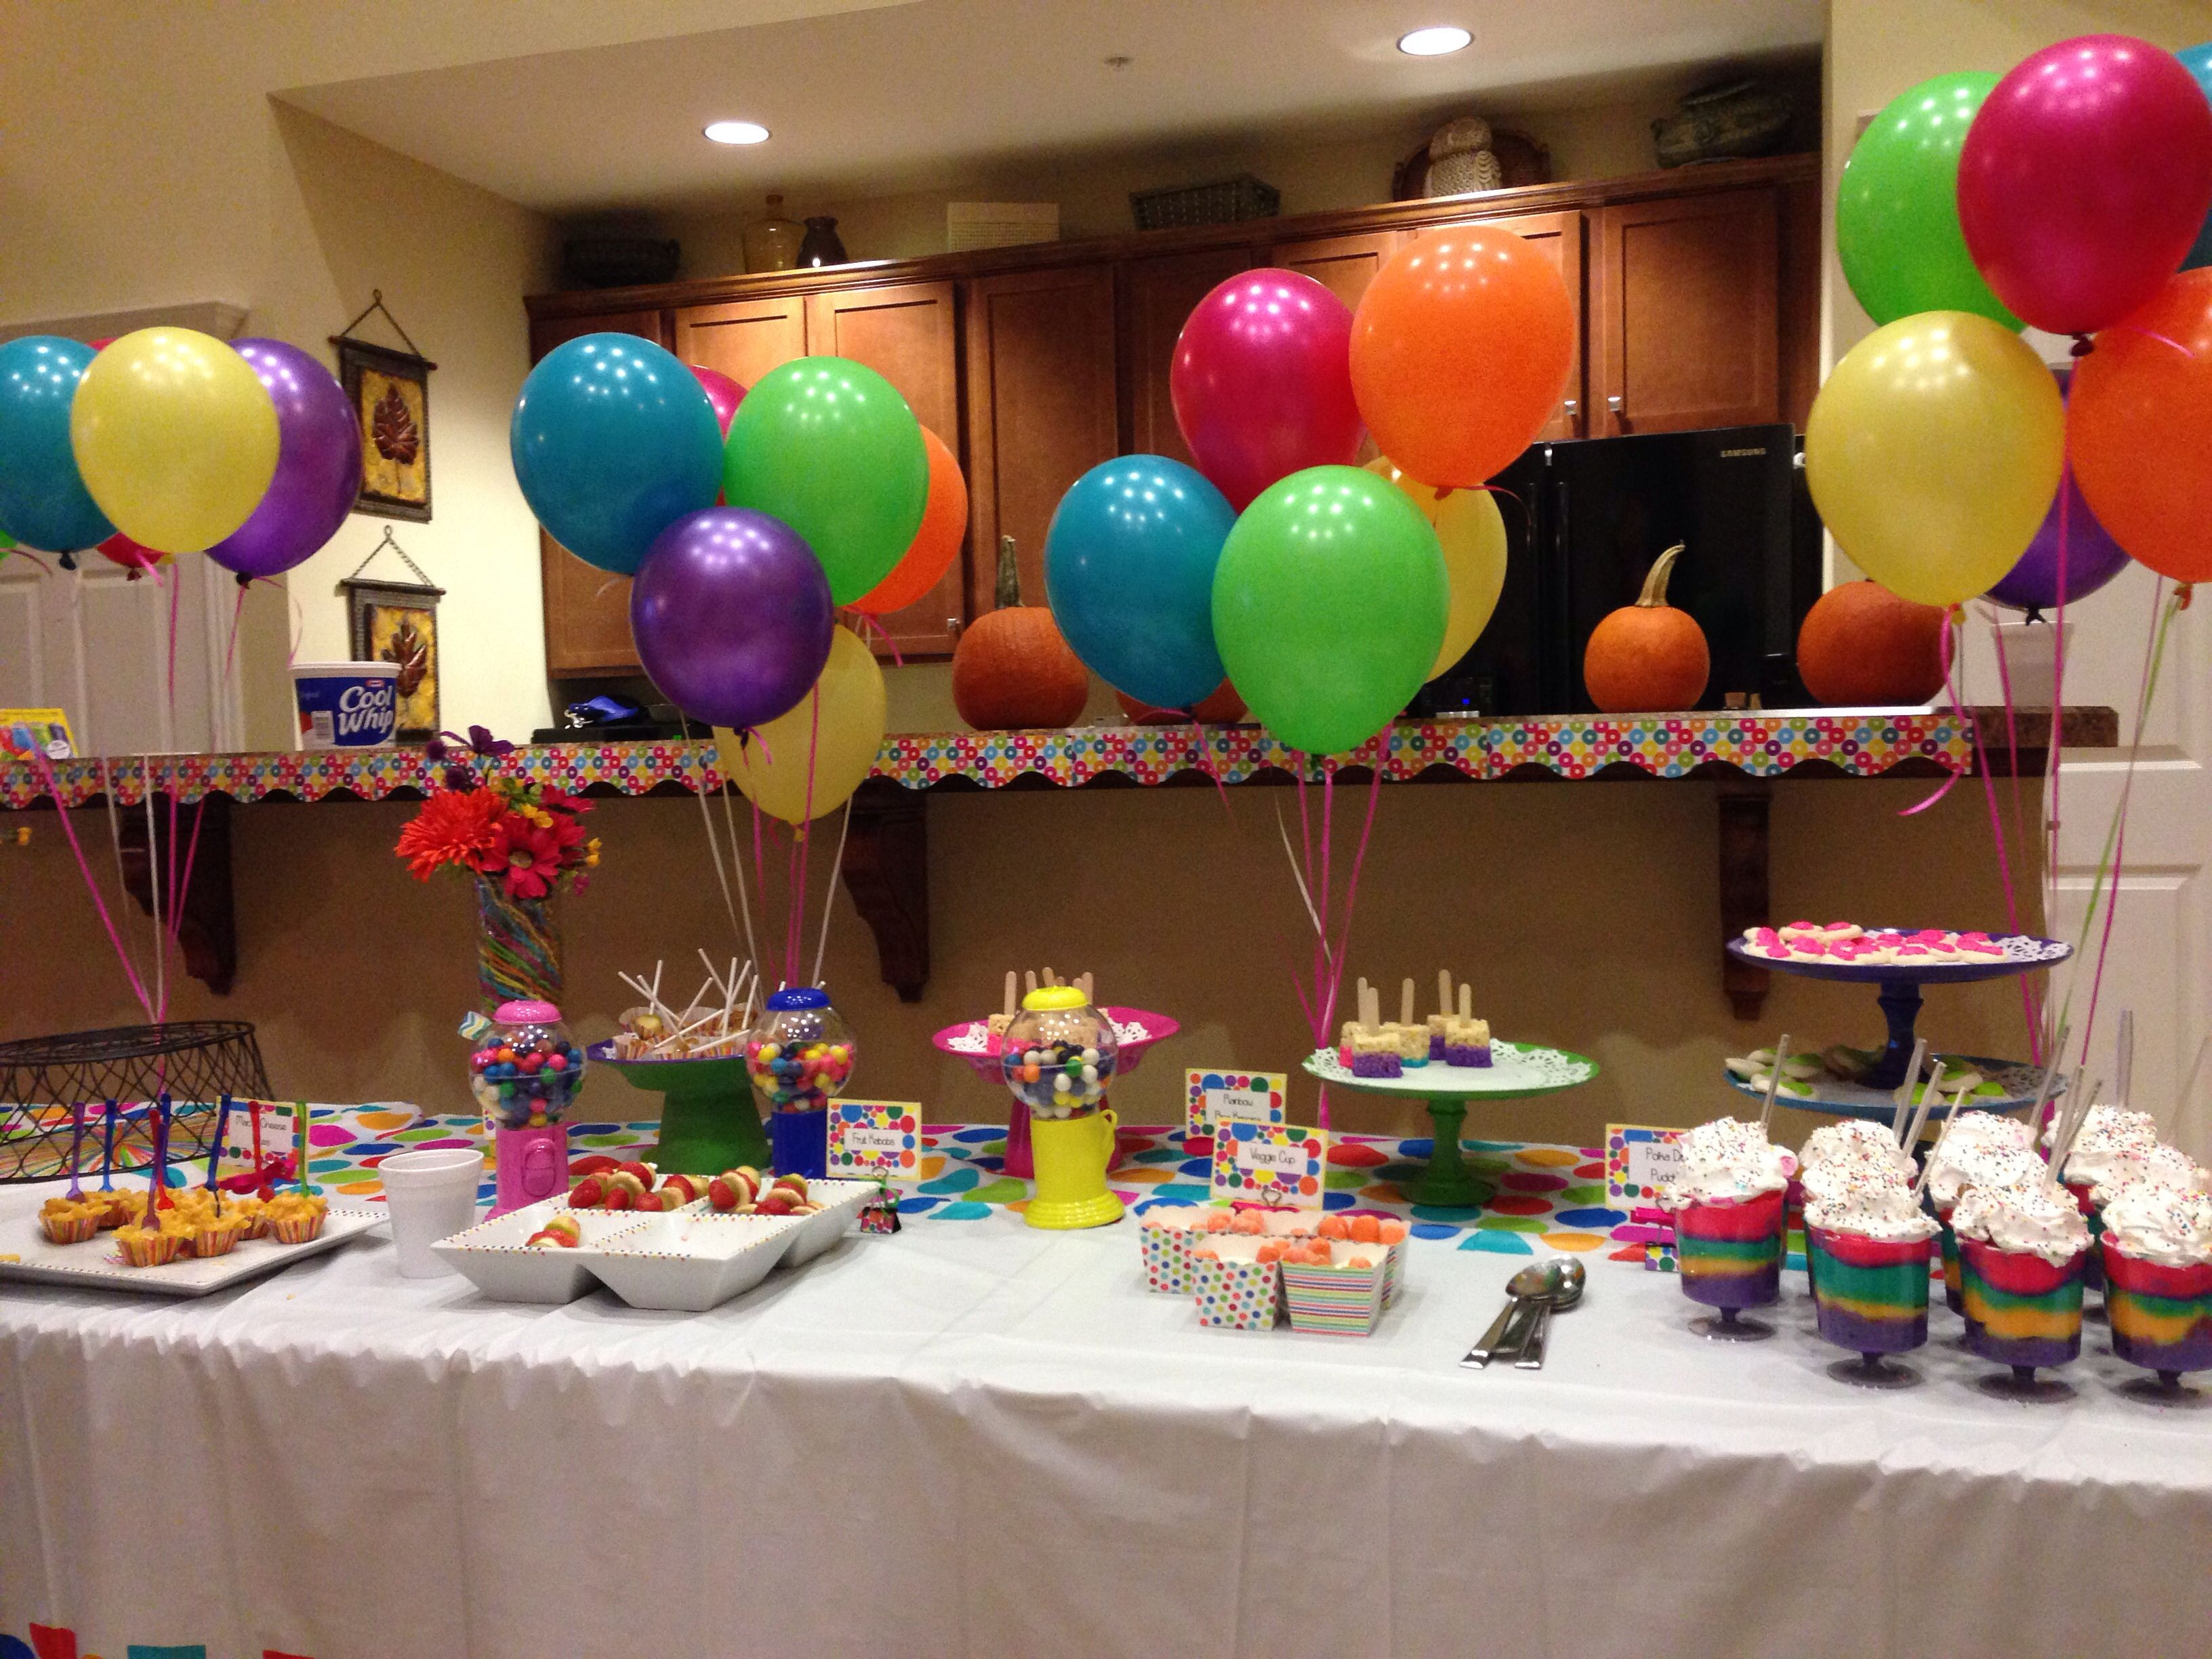 Summer Birthday Party Ideas For 4 Year Old Boy  4 Year Old Birthday Party Ideas Party Ideas for Kids